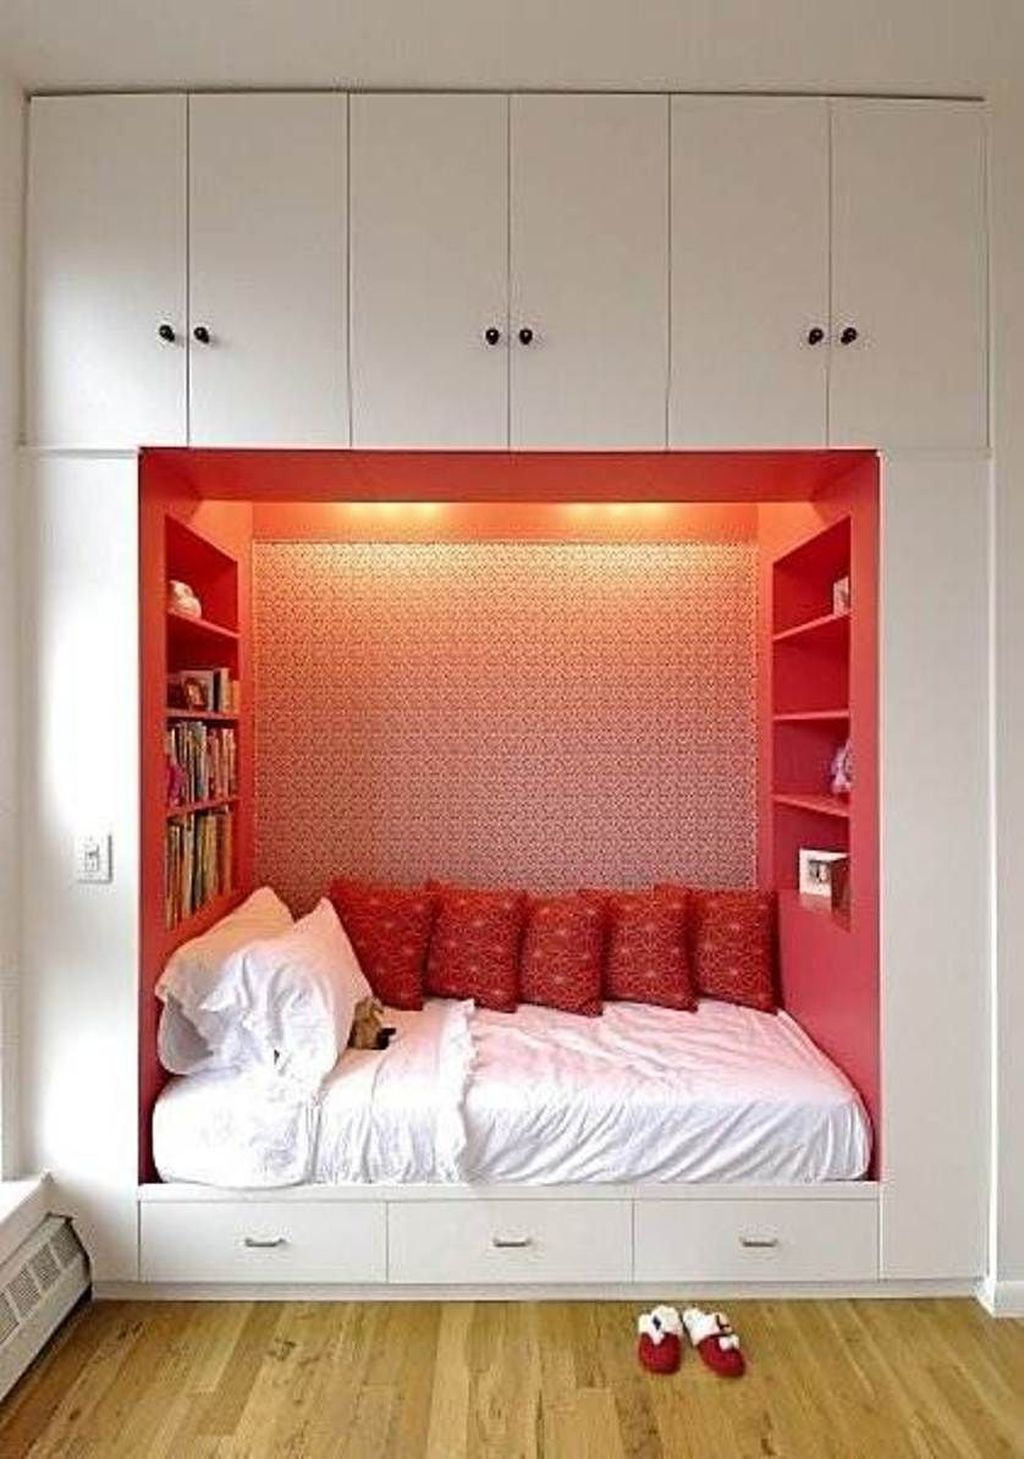 Stunning Bedroom Storage Ideas 29